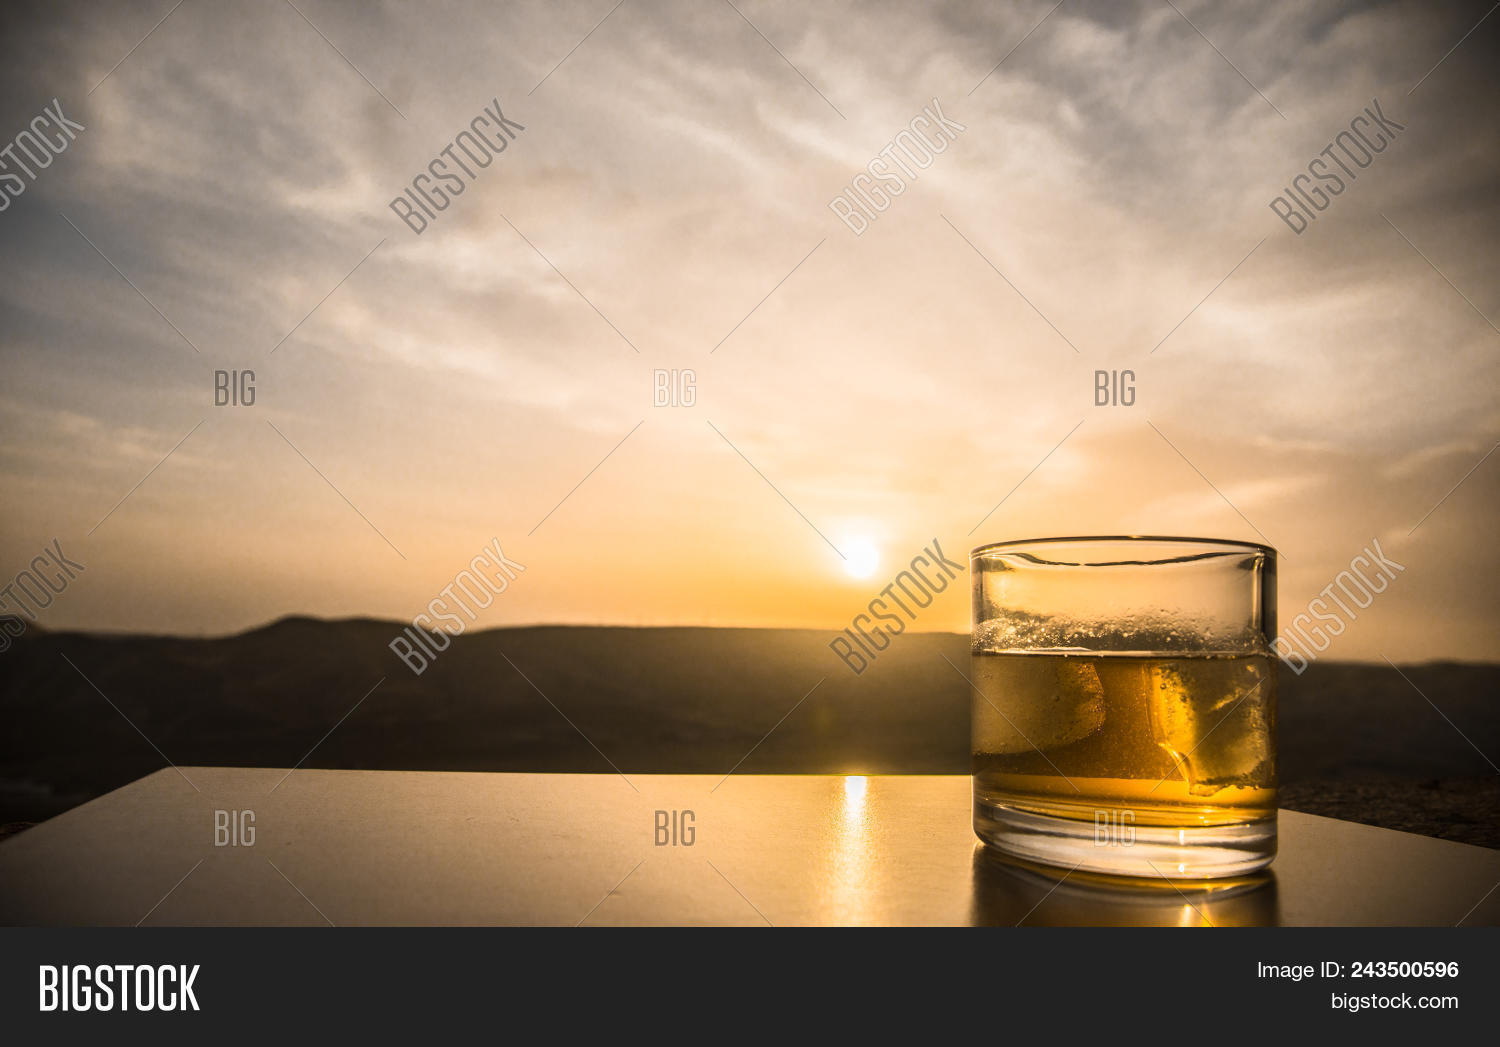 Glass Whiskey Ice On Image & Photo (Free Trial) | Bigstock